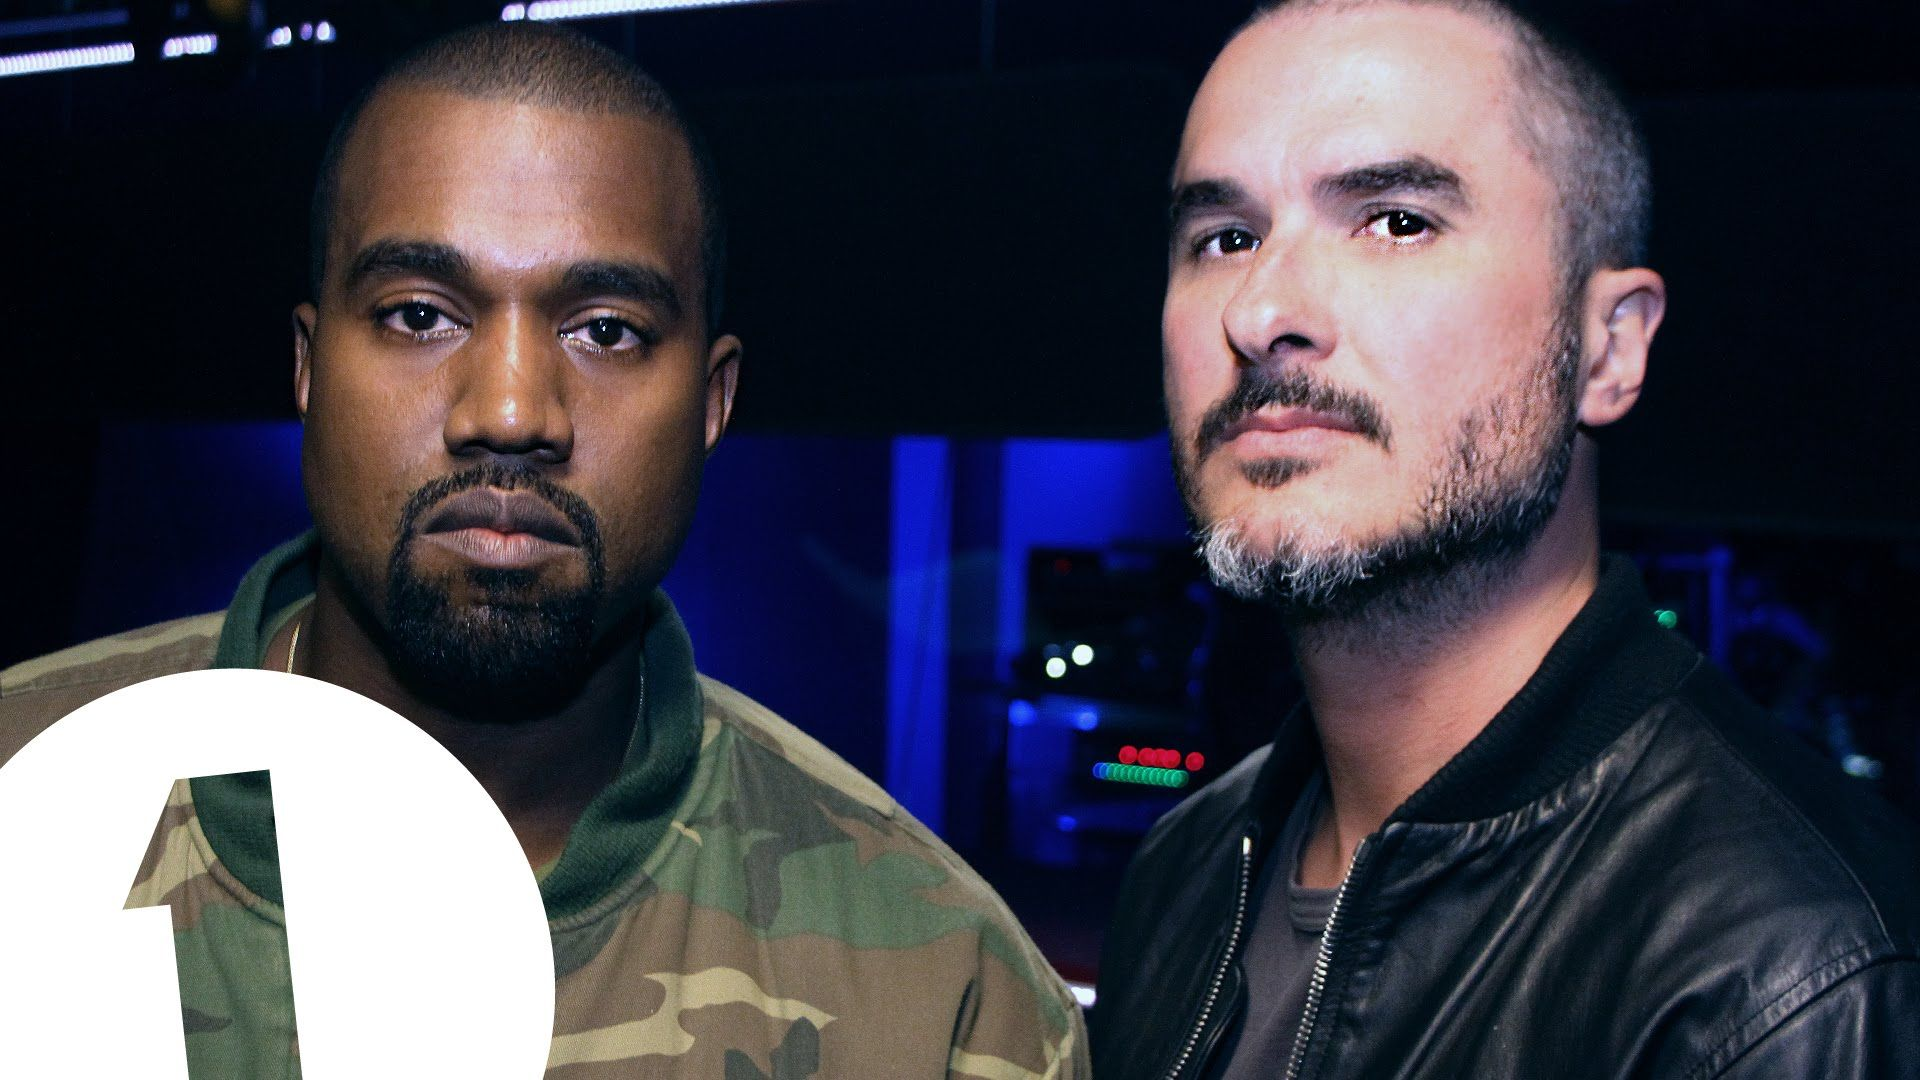 Zane Lowe Meets Kanye West 2015 Contains Strong Language Kanye West Interview Kanye West Bbc Radio